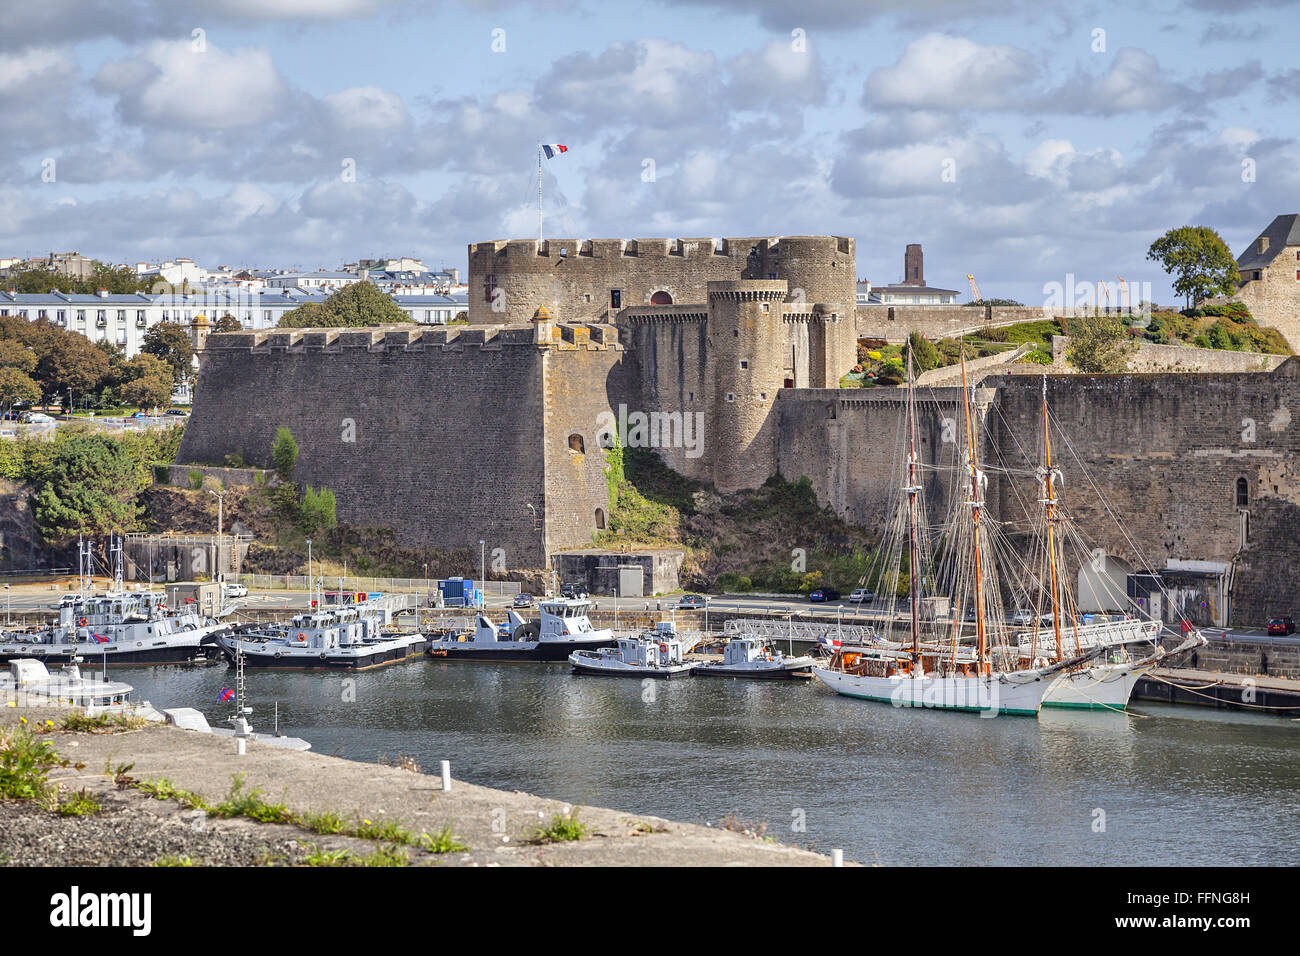 Old castle of city Brest, Brittany, France - Stock Image